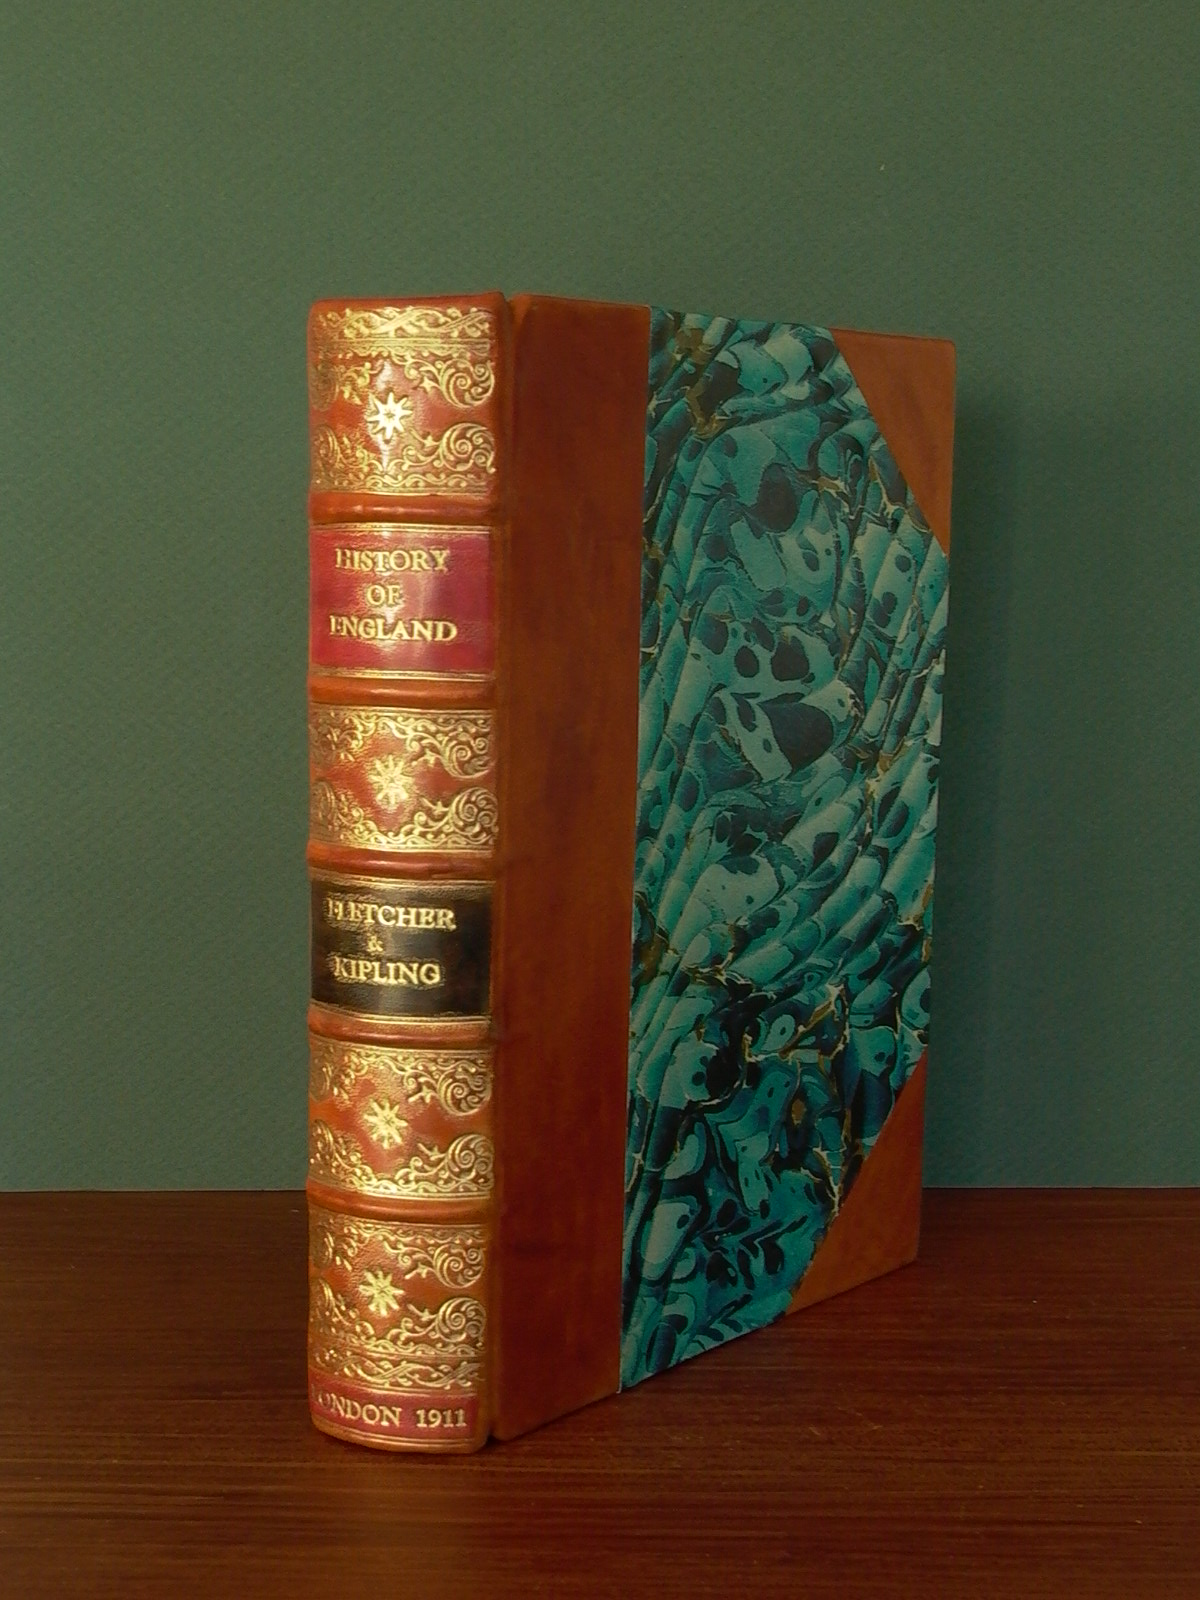 A Rare 1911 Large Print Edition of A History of England